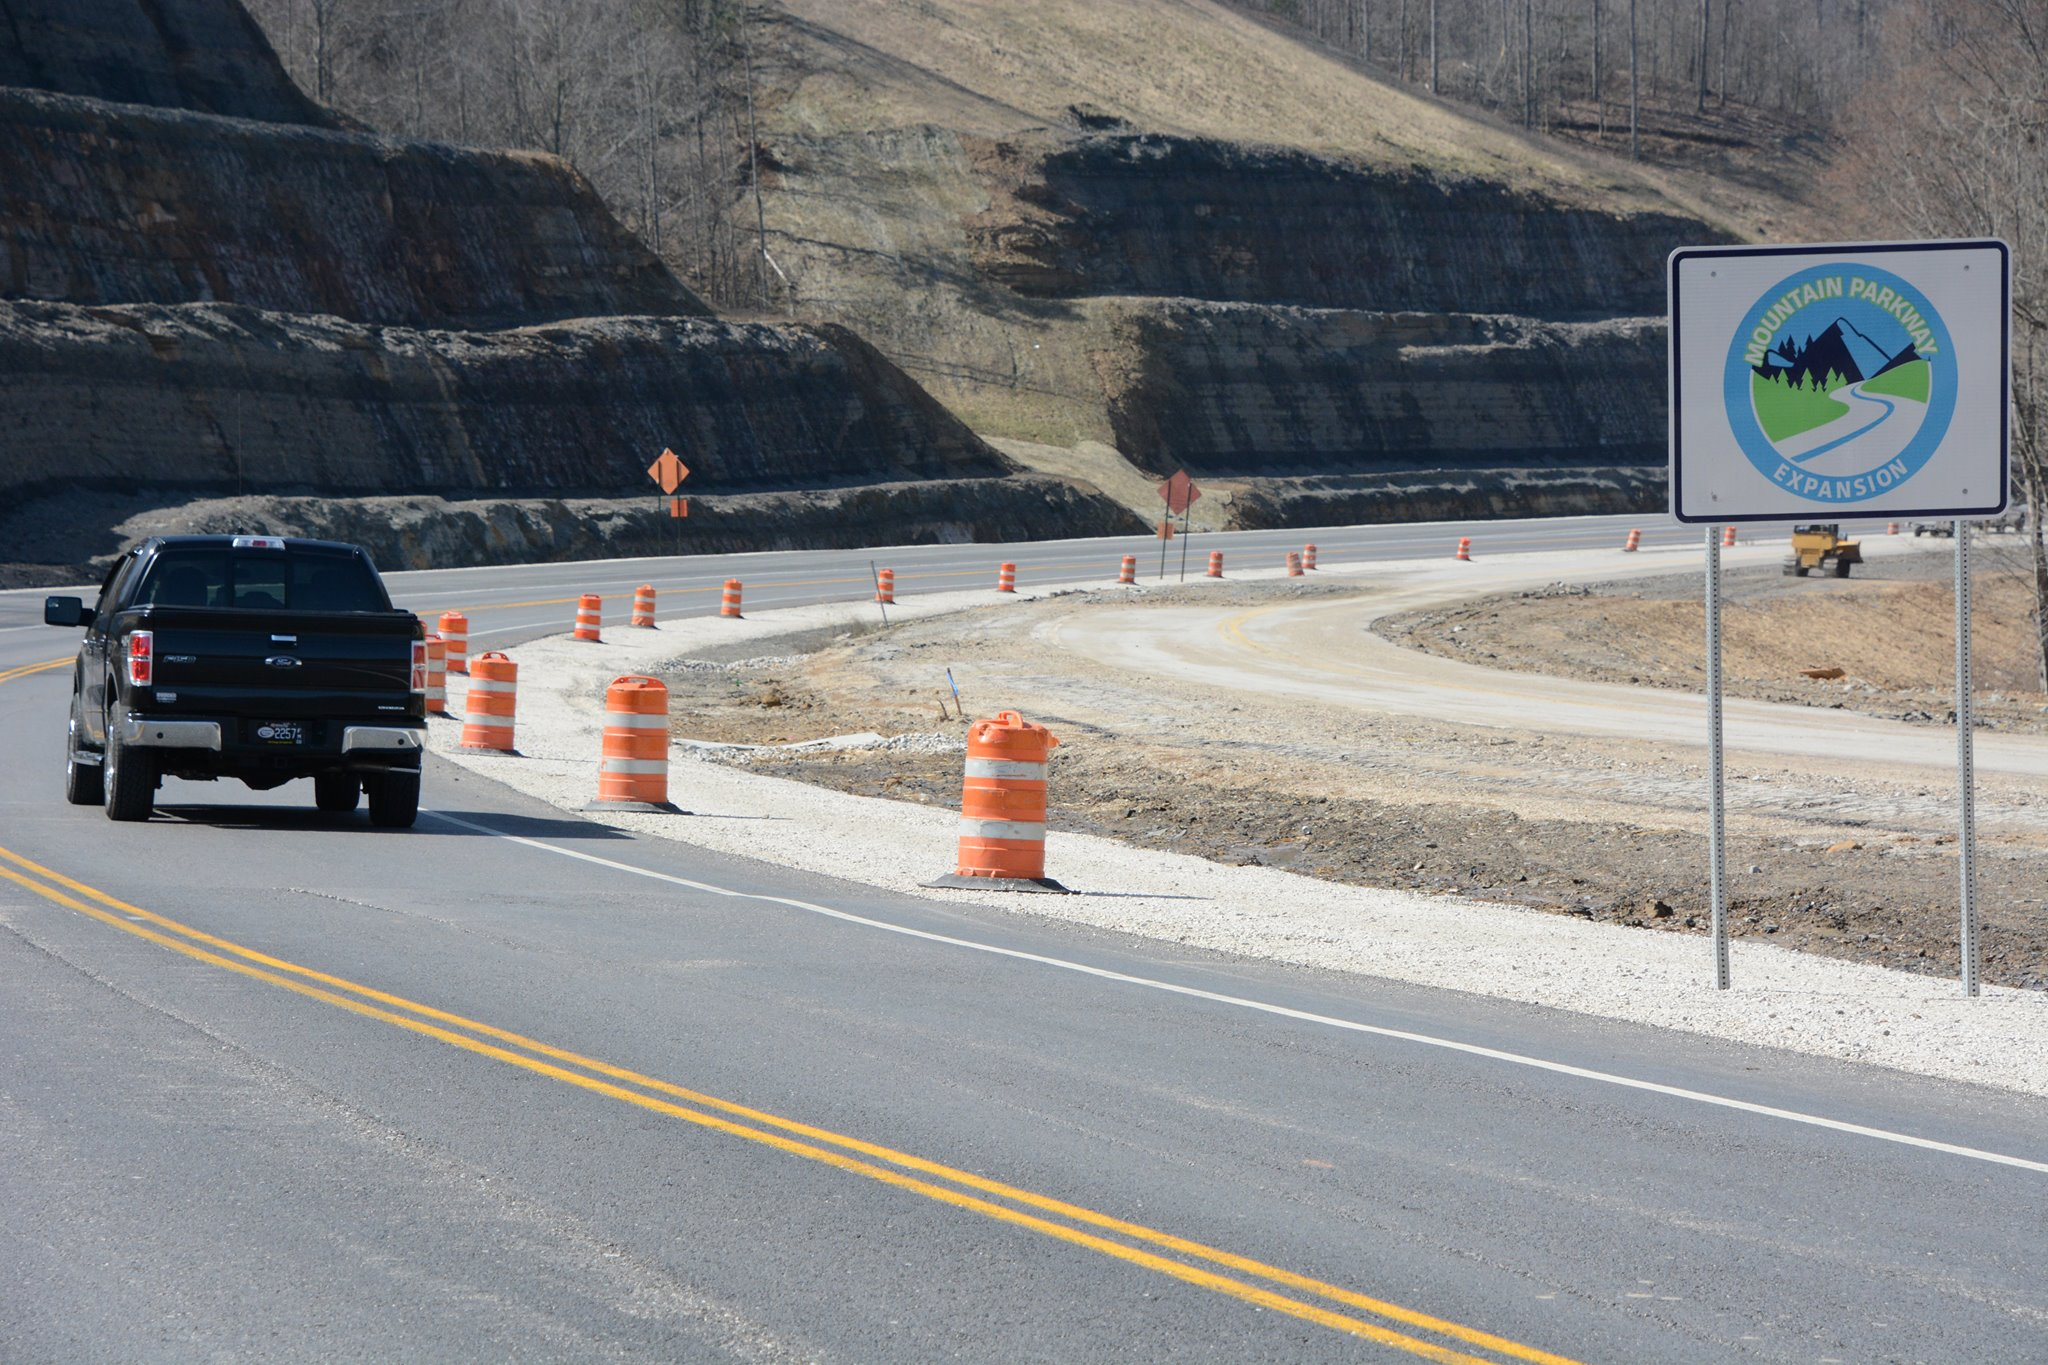 Mountain Parkway expansion draws $55M federal grant